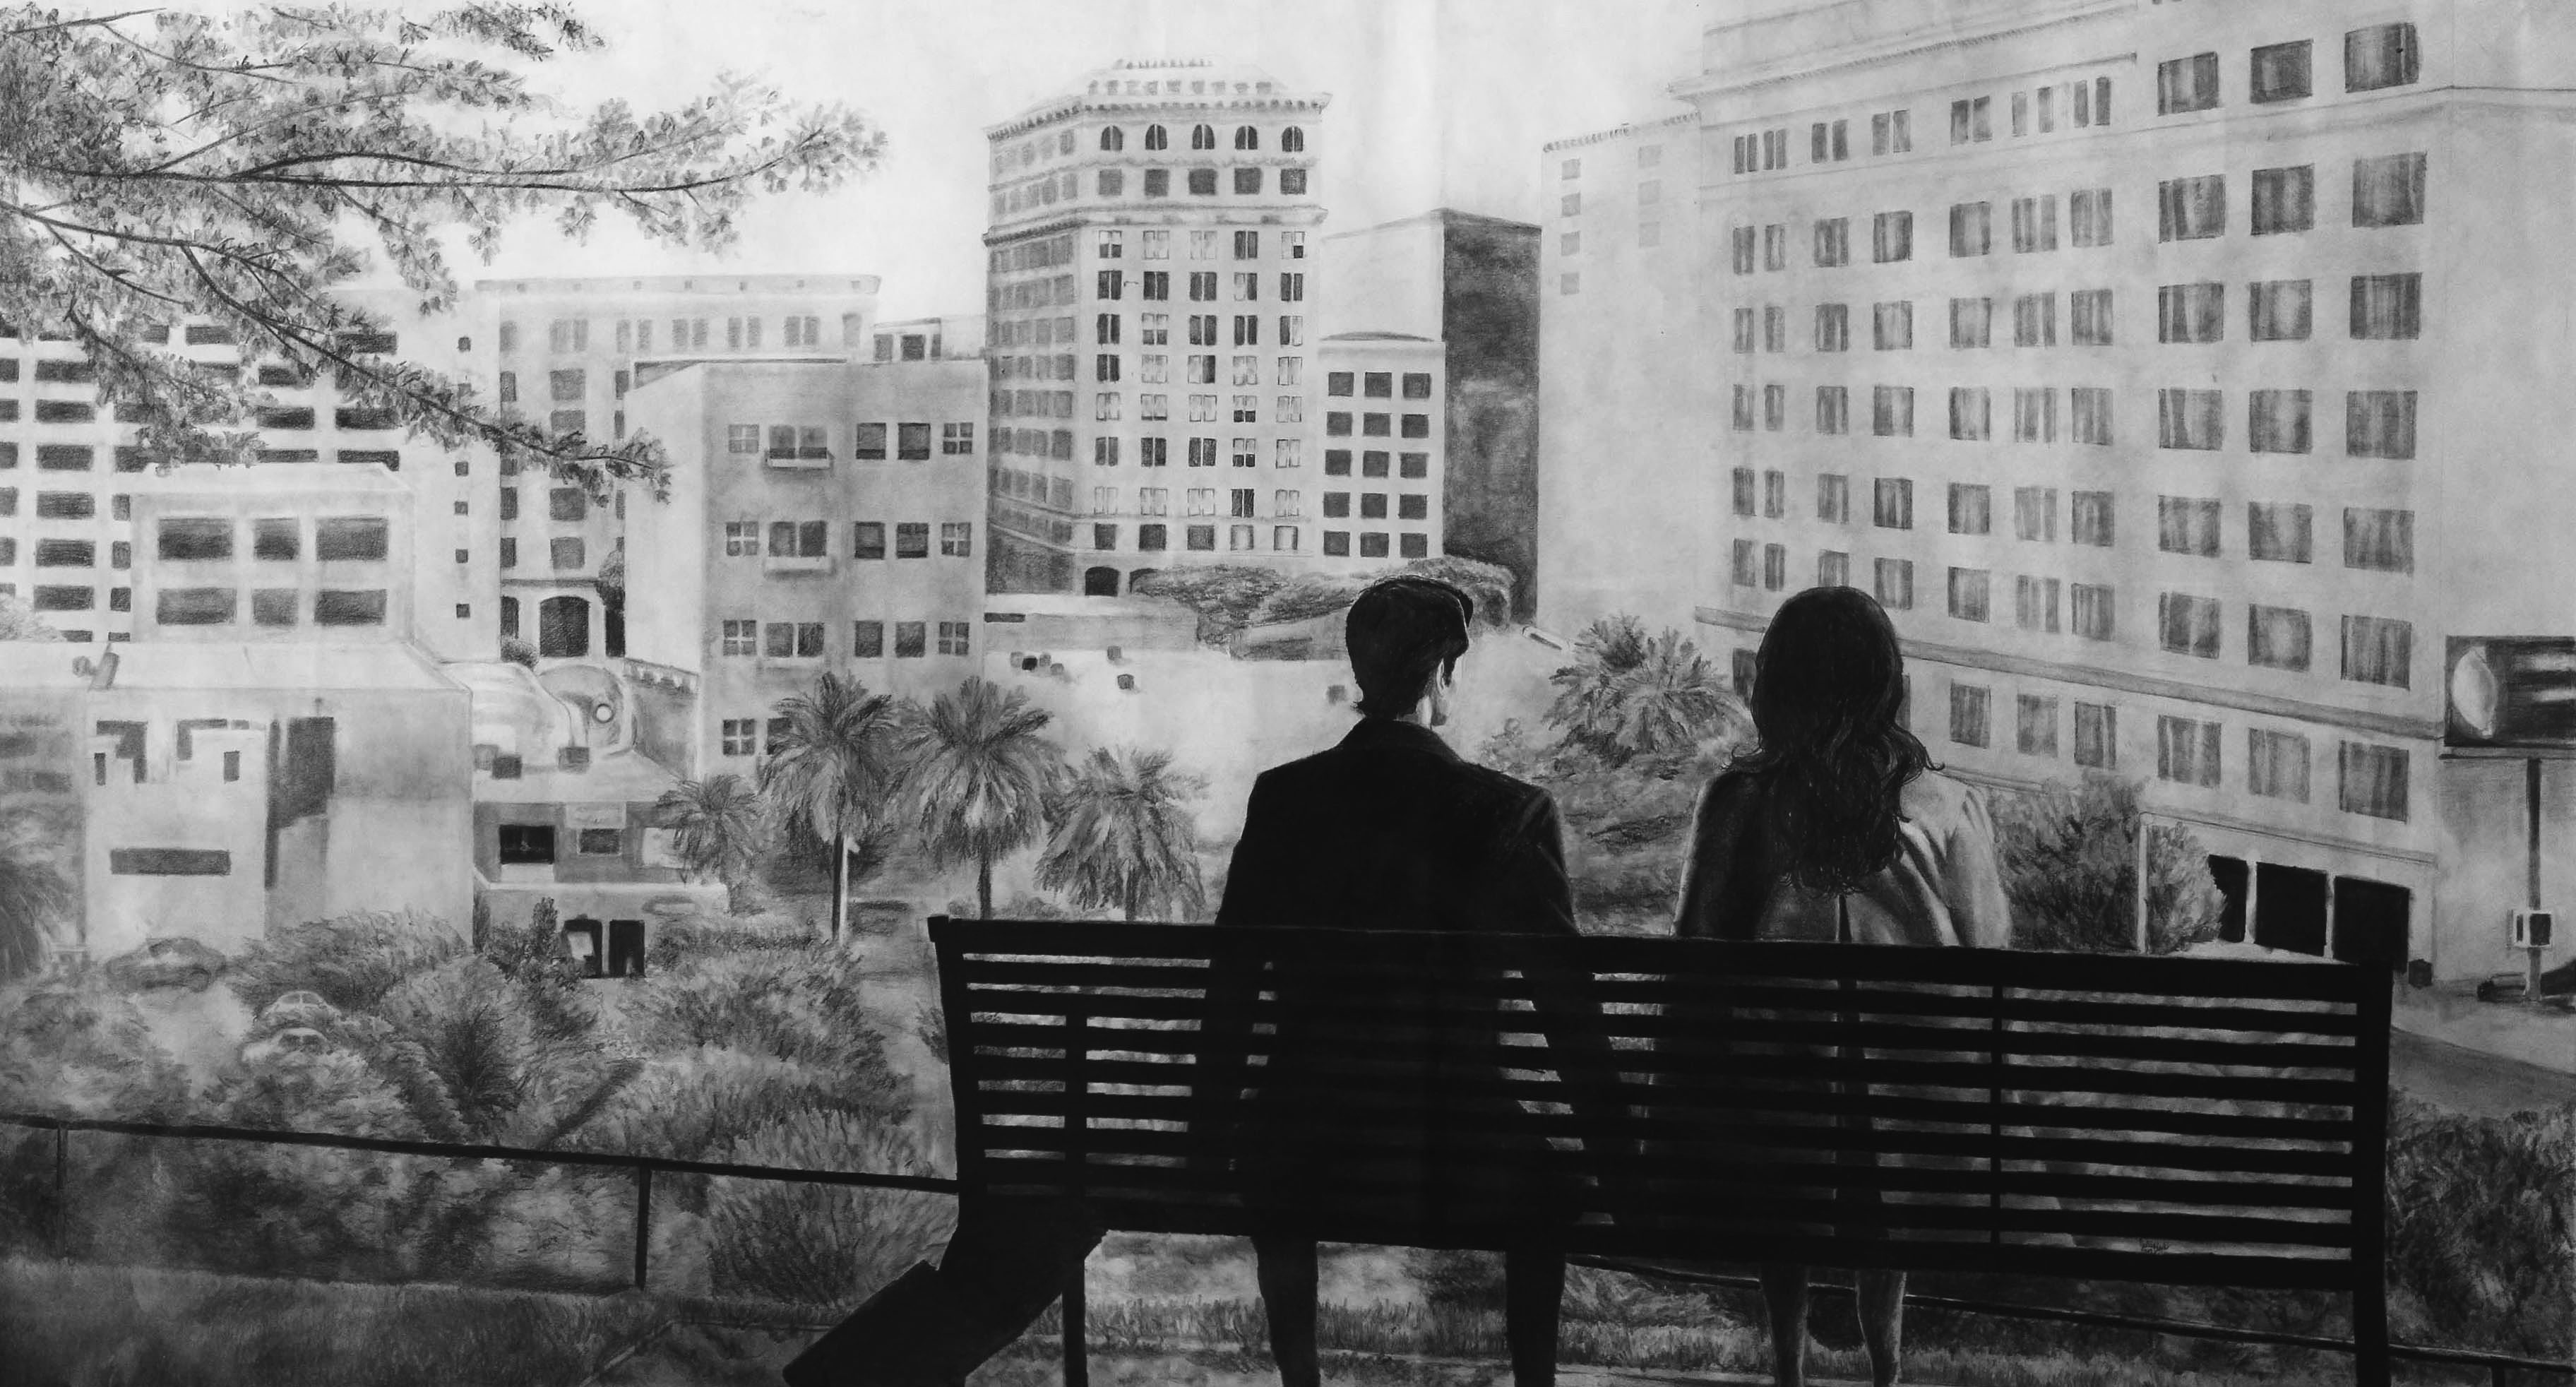 architecture drawing 500 days of summer. Simple Architecture 5lifelessonswelearnedfrom500days With Architecture Drawing 500 Days Of Summer